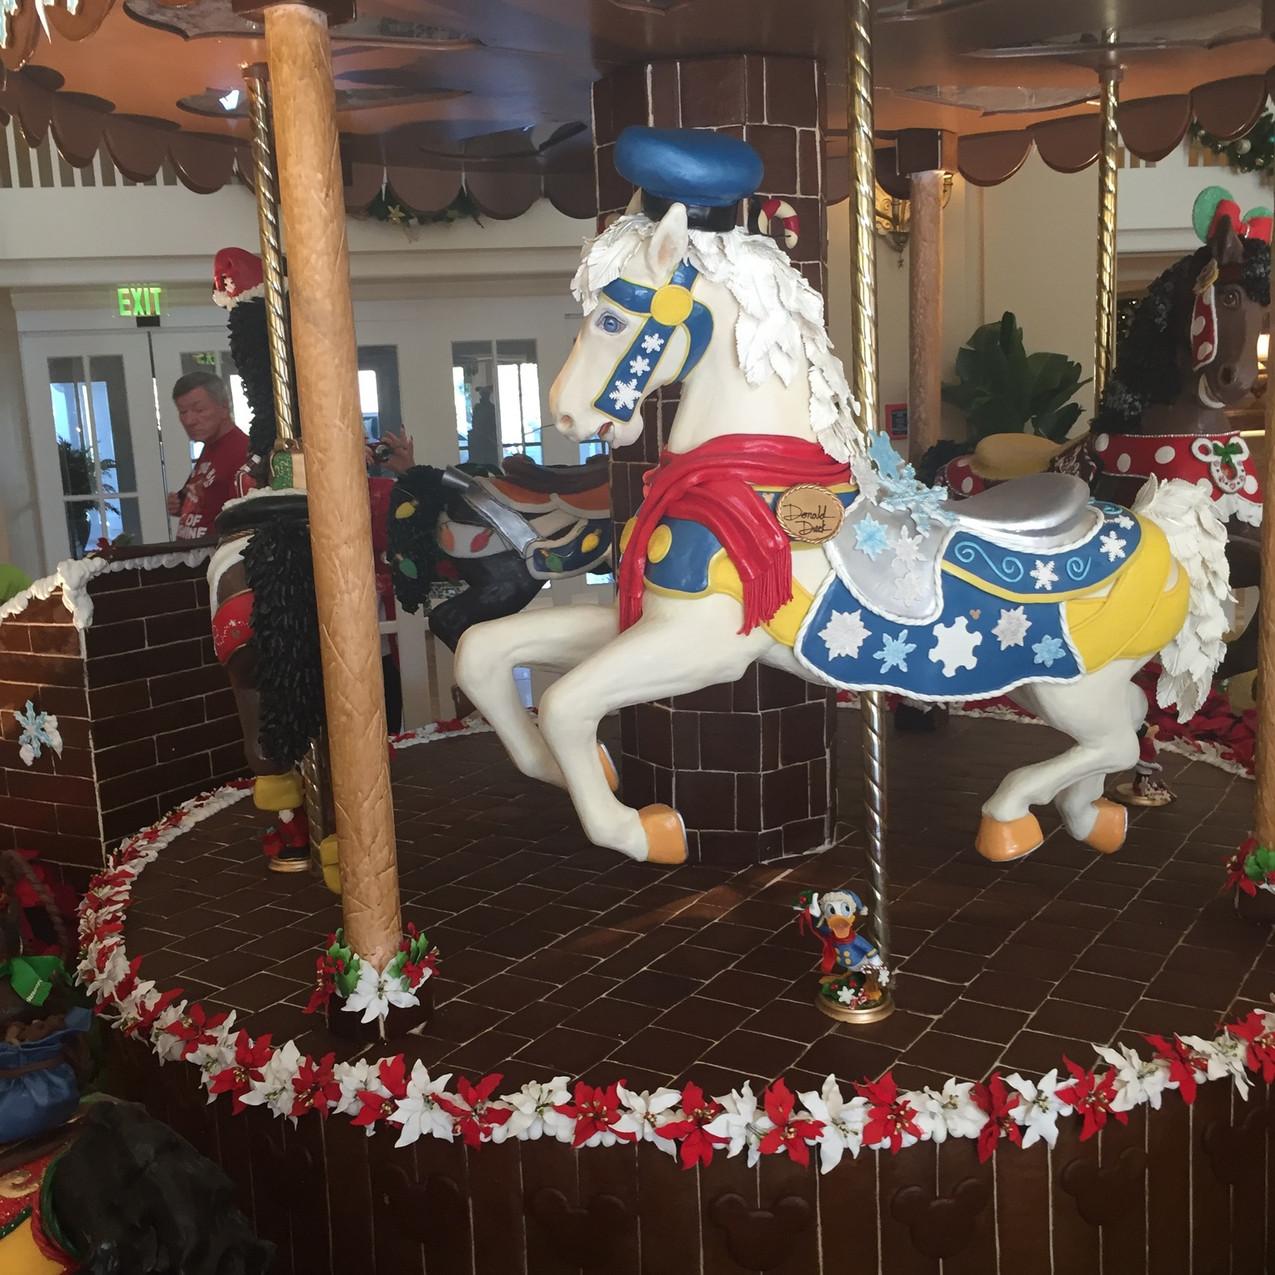 The lobby of the Beach Club fills with the scent of chocolate from this massive chocolate carousel.